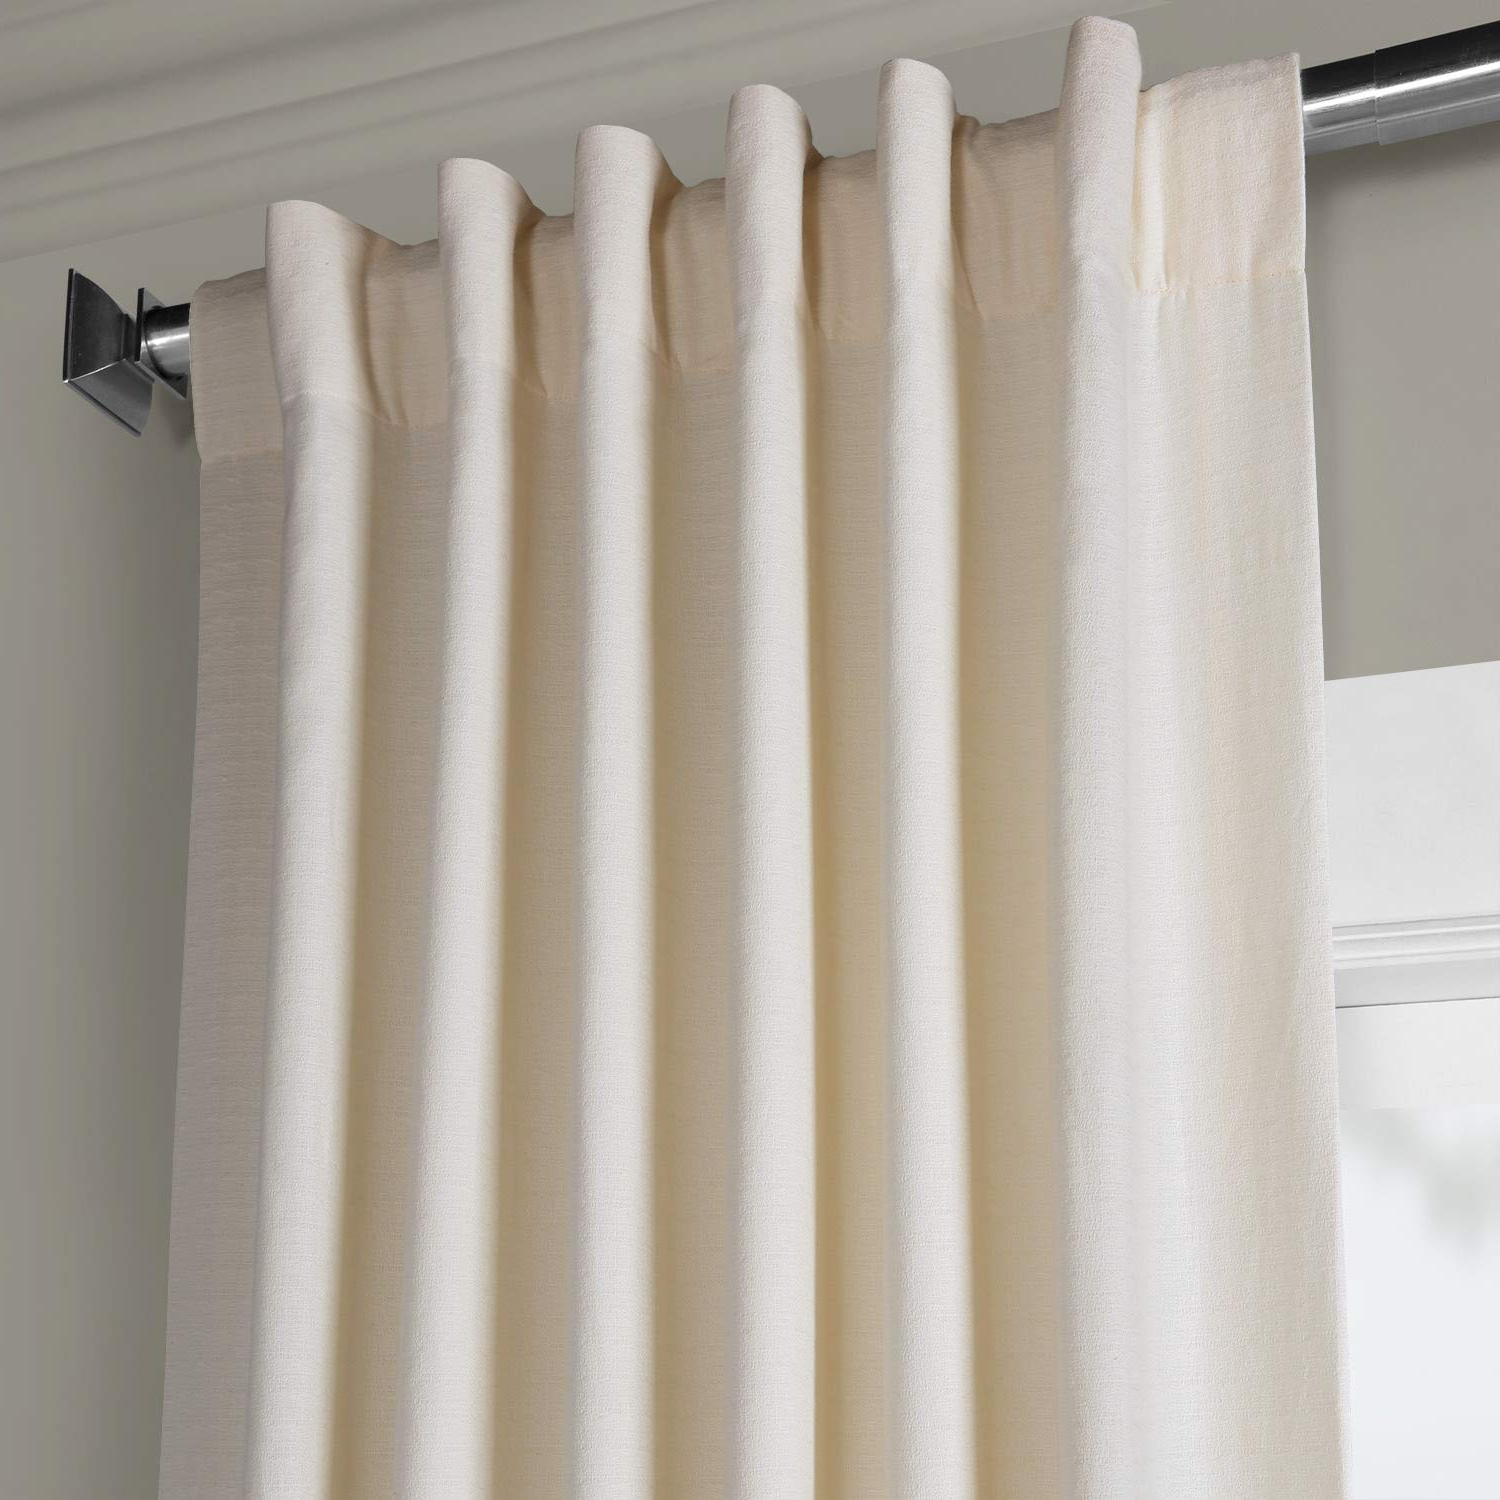 Hpd Half Price Drapes Bark Weave Solid Cotton Curtain, Pale Ivory (ivory) Pertaining To Fashionable Bark Weave Solid Cotton Curtains (View 16 of 20)